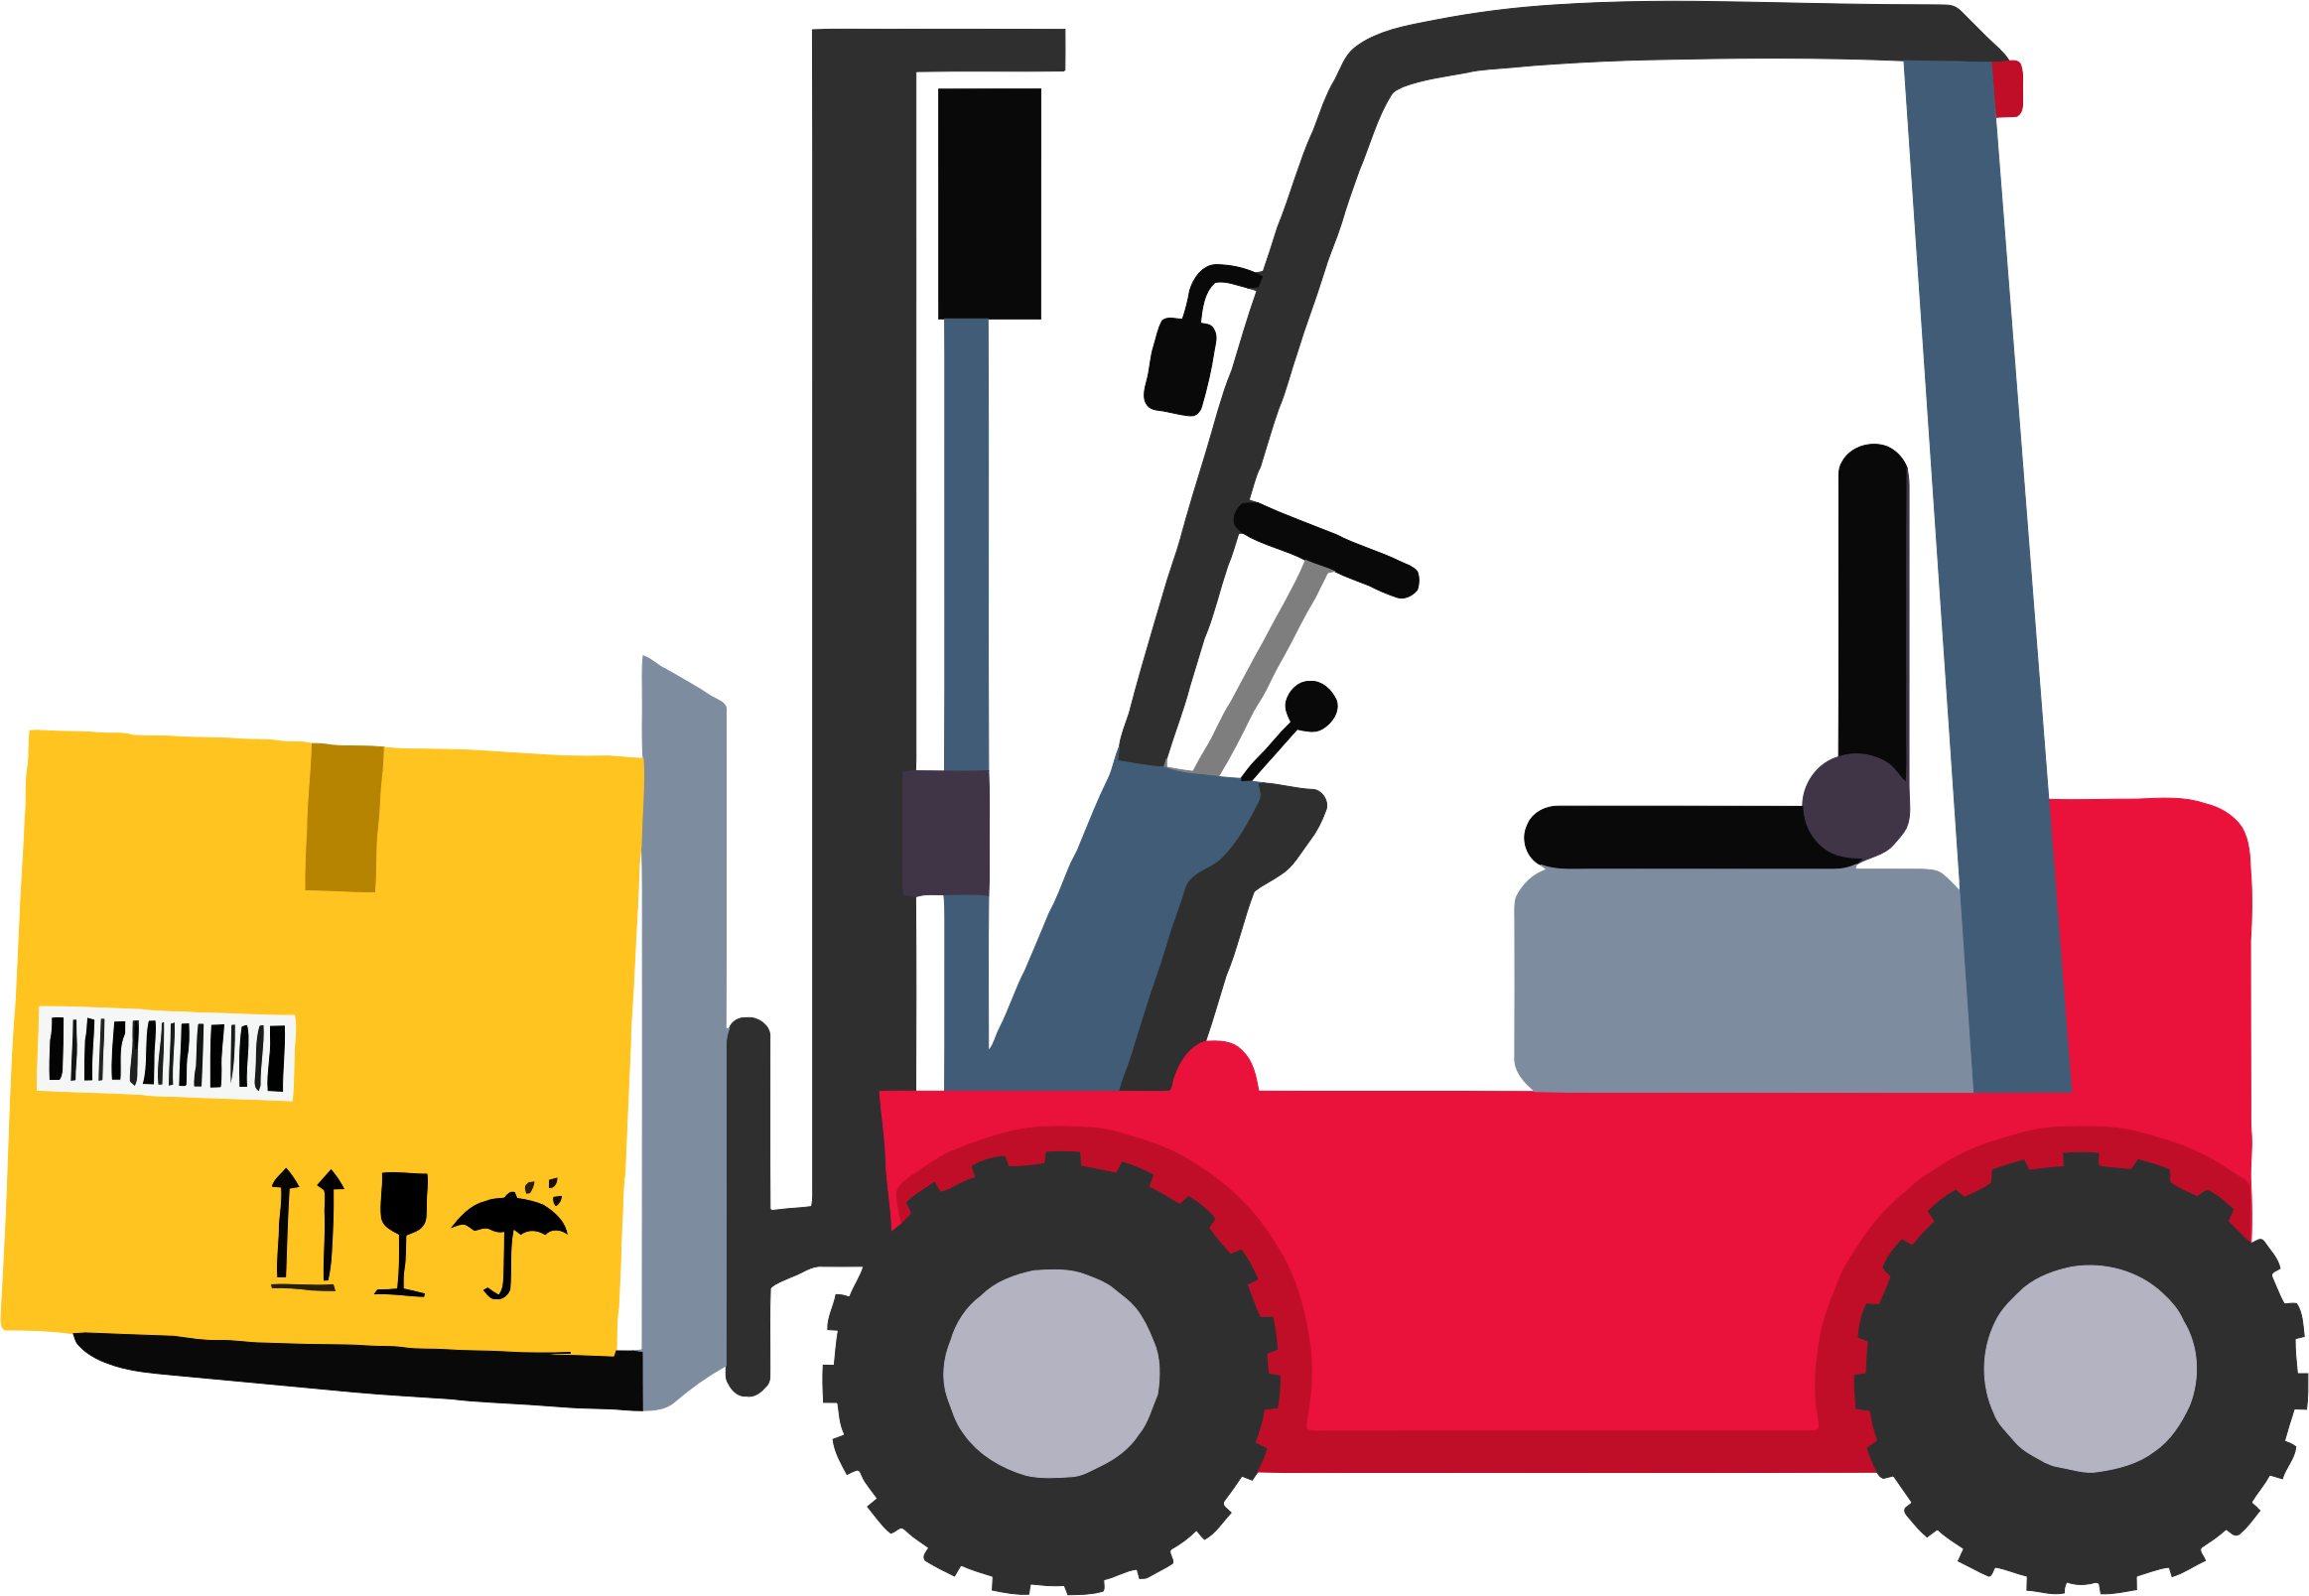 Forklift clipart small warehouse. Big image png